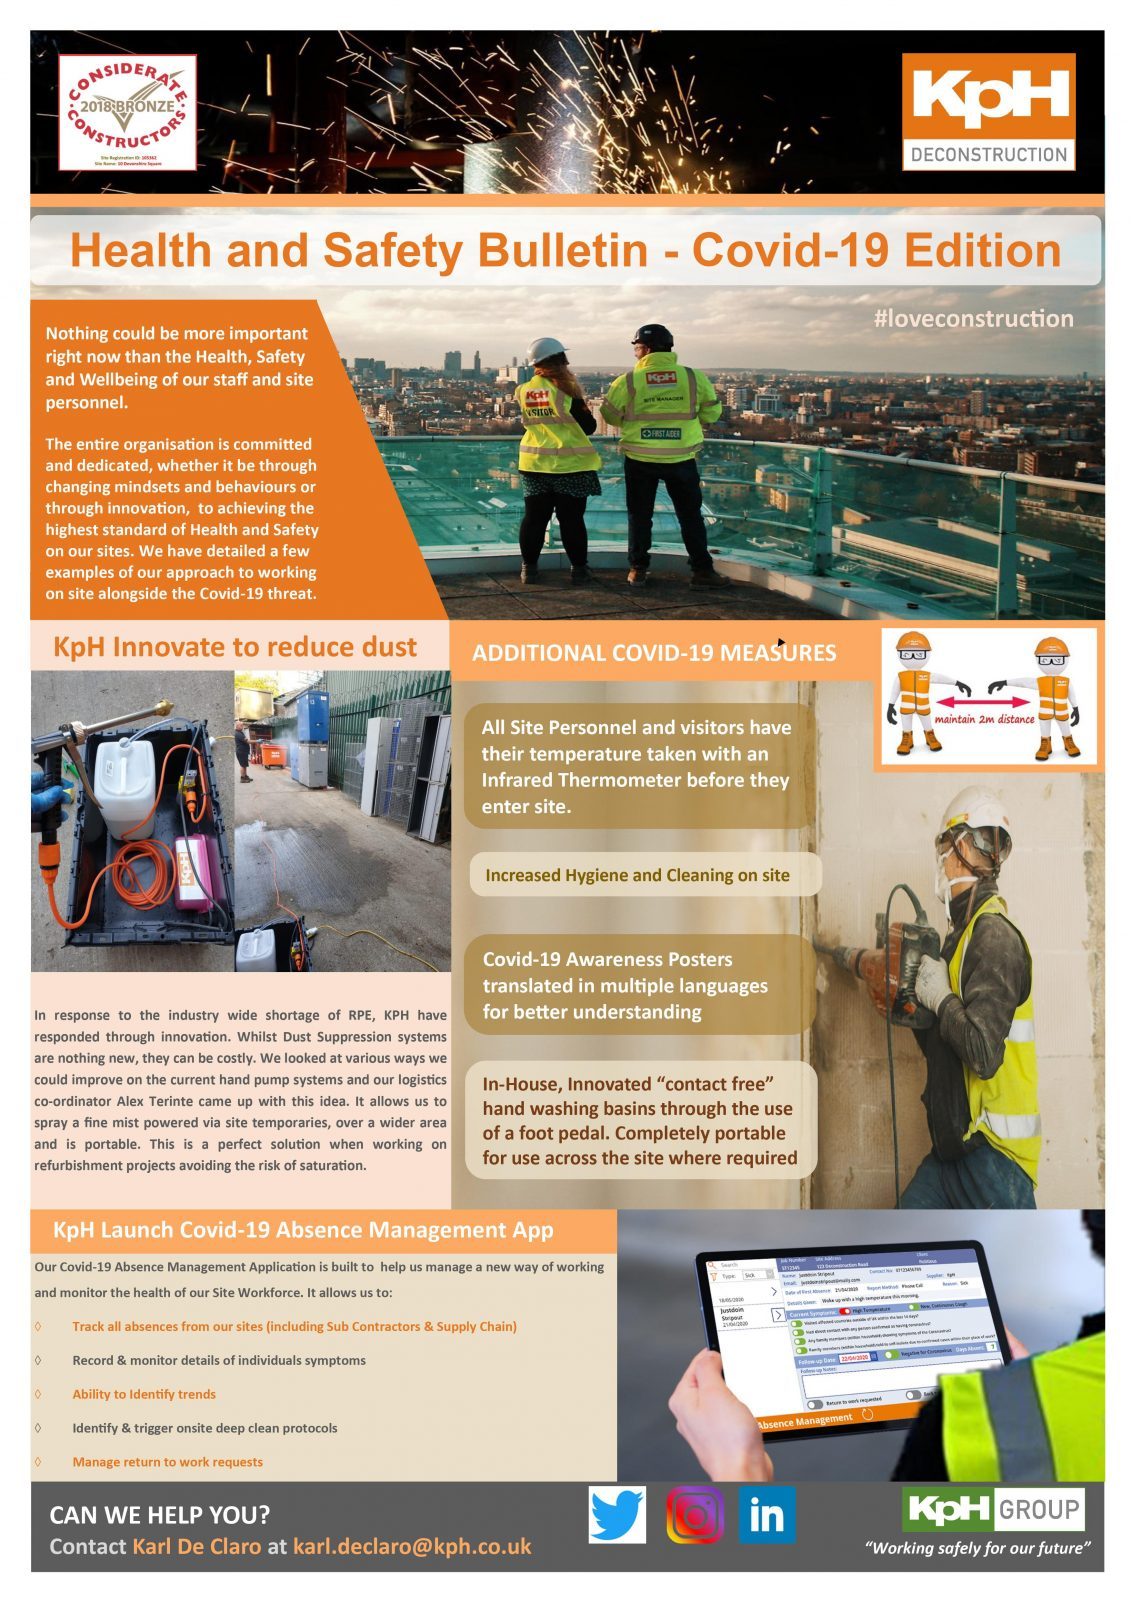 Health and Safety Bulletin - Covid-19 Edition